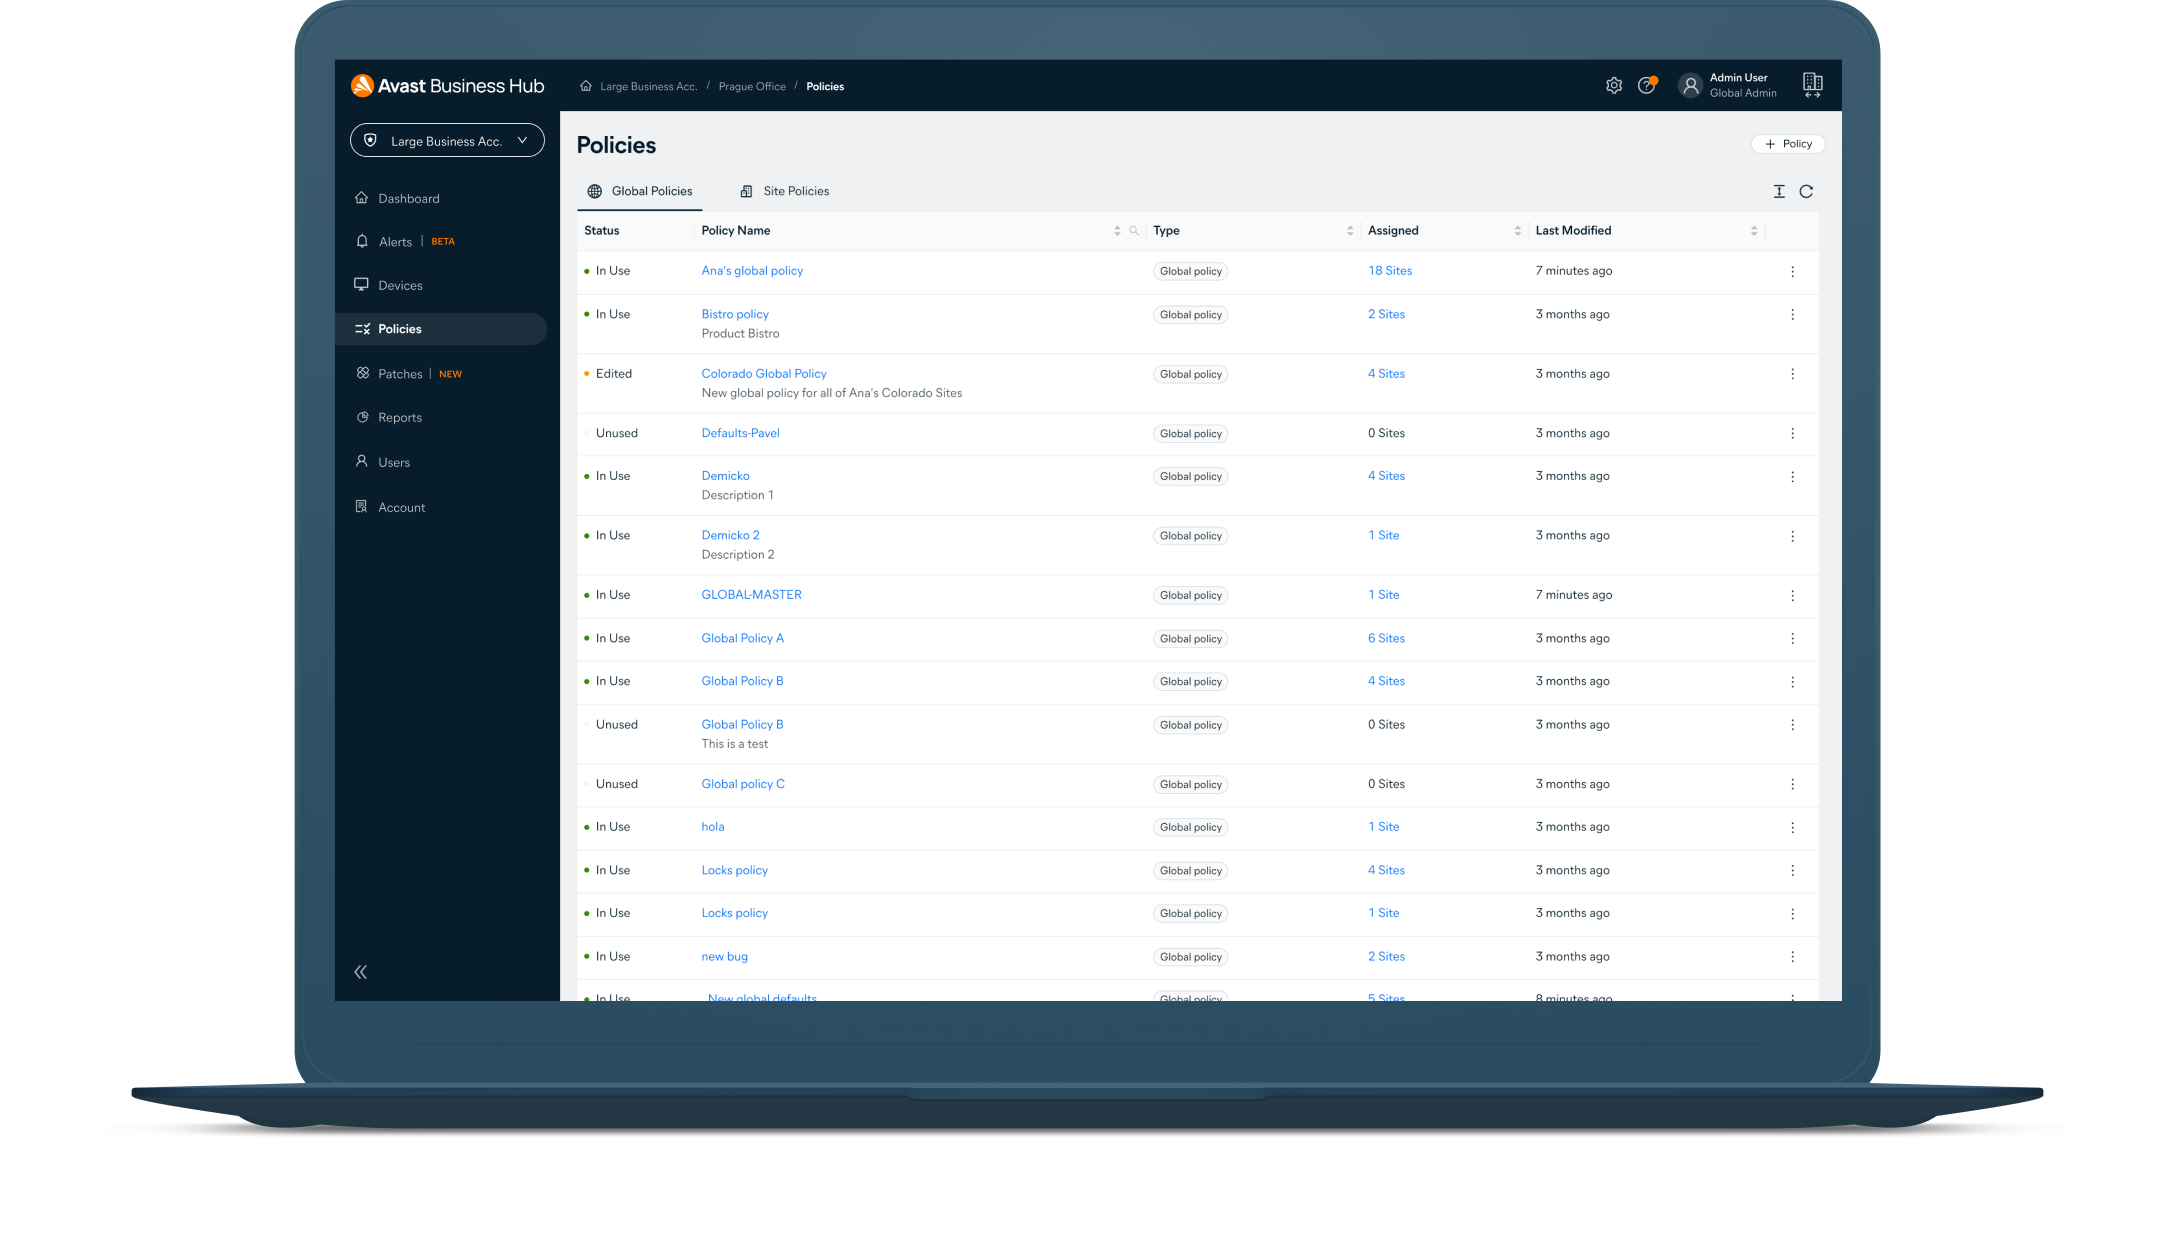 Apply commands across devices like scans, restarts, and more. Run commands automatically based on policy settings.